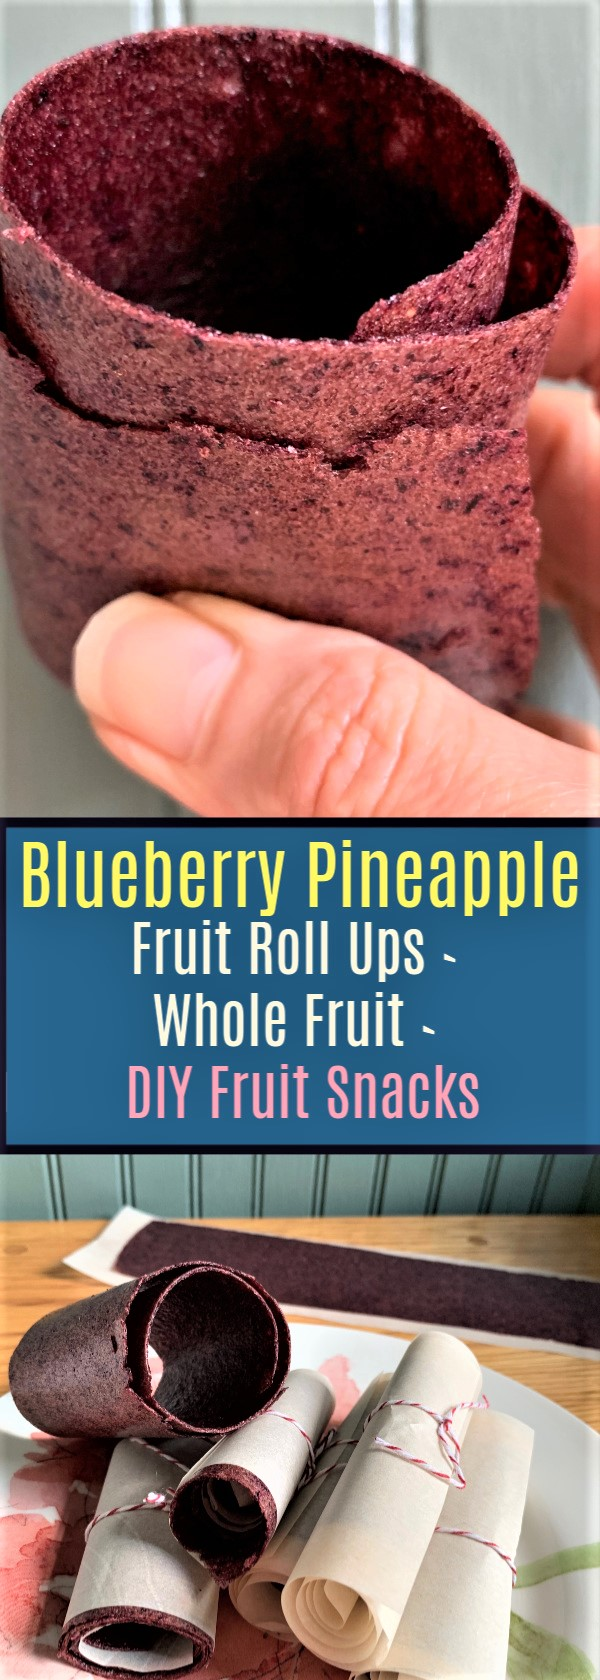 Blueberry Pineapple Fruit Roll Ups that you can make yourself with Whole Fruit, No Added Colors and No Refined Sugar